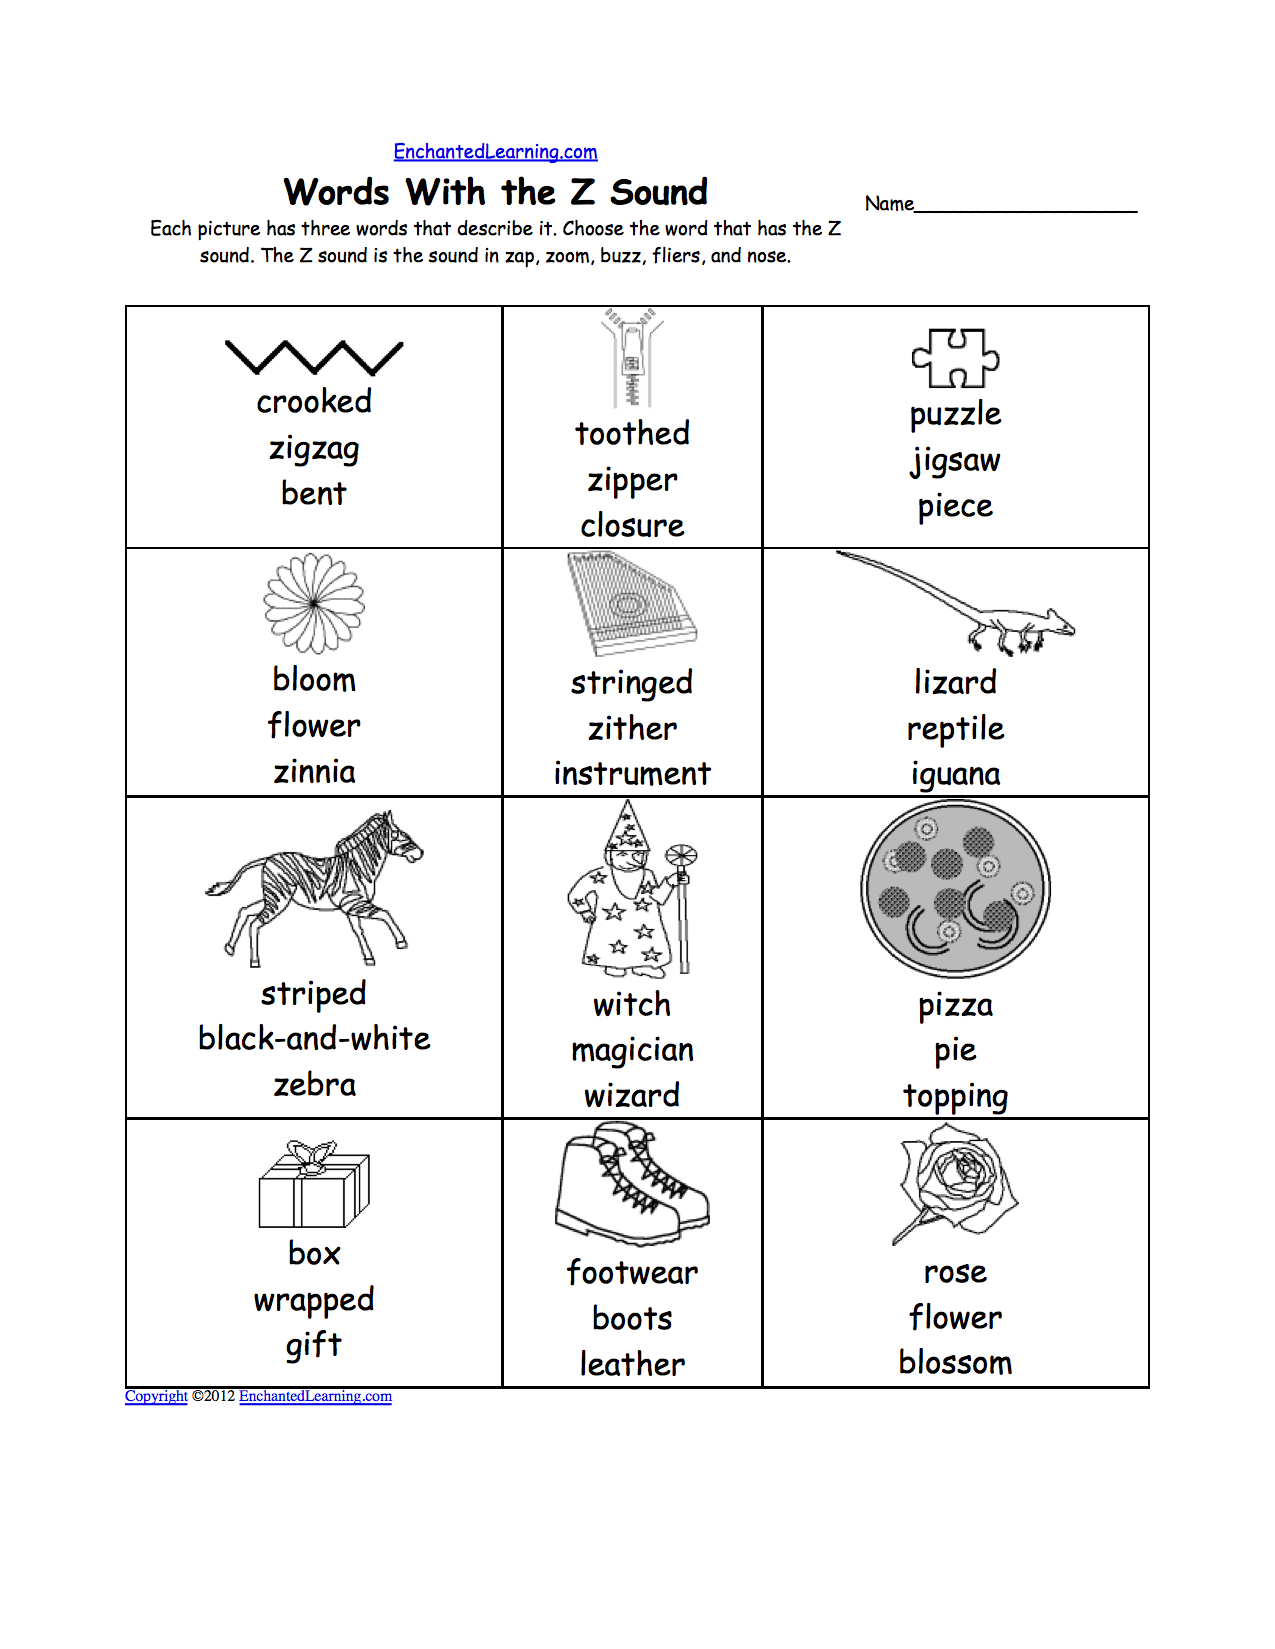 Aldiablosus  Picturesque Phonics Worksheets Multiple Choice Worksheets To Print  With Exciting Phonics Worksheets Multiple Choice Worksheets To Print  Enchantedlearningcom With Charming Brain Game Worksheets Also Budget Planner Worksheet Free In Addition Subject And Predicate Worksheets For Rd Grade And Blank Skeleton Worksheet As Well As Worksheets For Th Grade Reading Additionally Linear Programming Worksheets From Enchantedlearningcom With Aldiablosus  Exciting Phonics Worksheets Multiple Choice Worksheets To Print  With Charming Phonics Worksheets Multiple Choice Worksheets To Print  Enchantedlearningcom And Picturesque Brain Game Worksheets Also Budget Planner Worksheet Free In Addition Subject And Predicate Worksheets For Rd Grade From Enchantedlearningcom